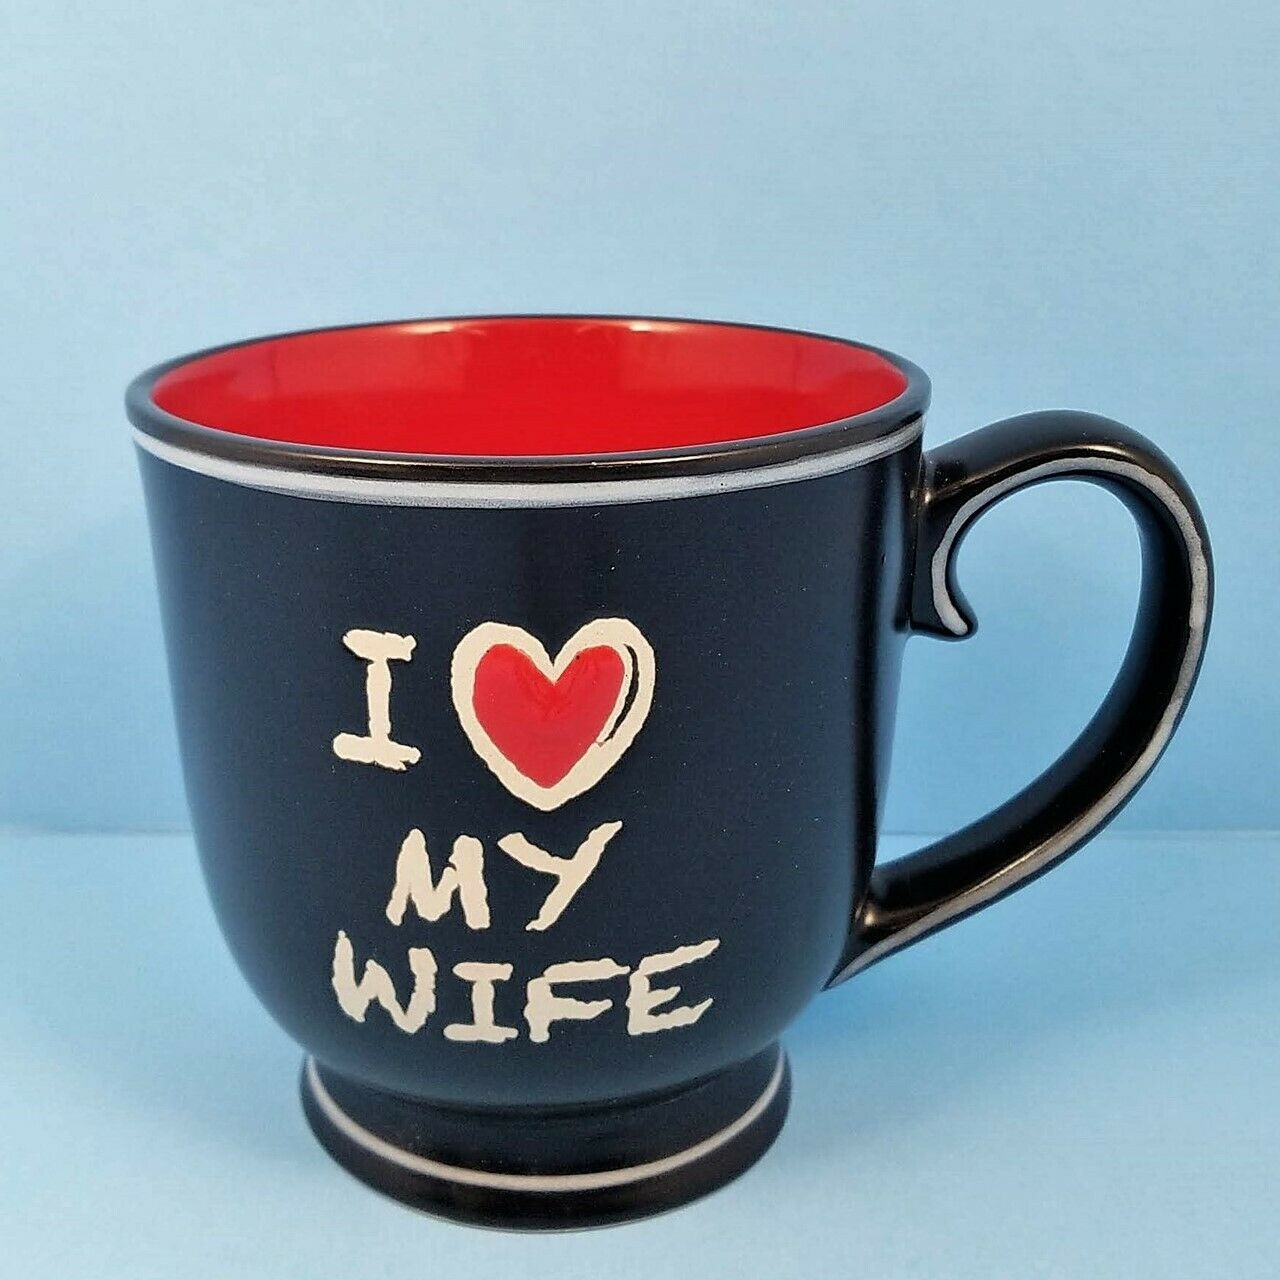 Chalkboard Coffee Mug Cup I Heart My Wife by Blue Sky Spectrum 17oz Black Red